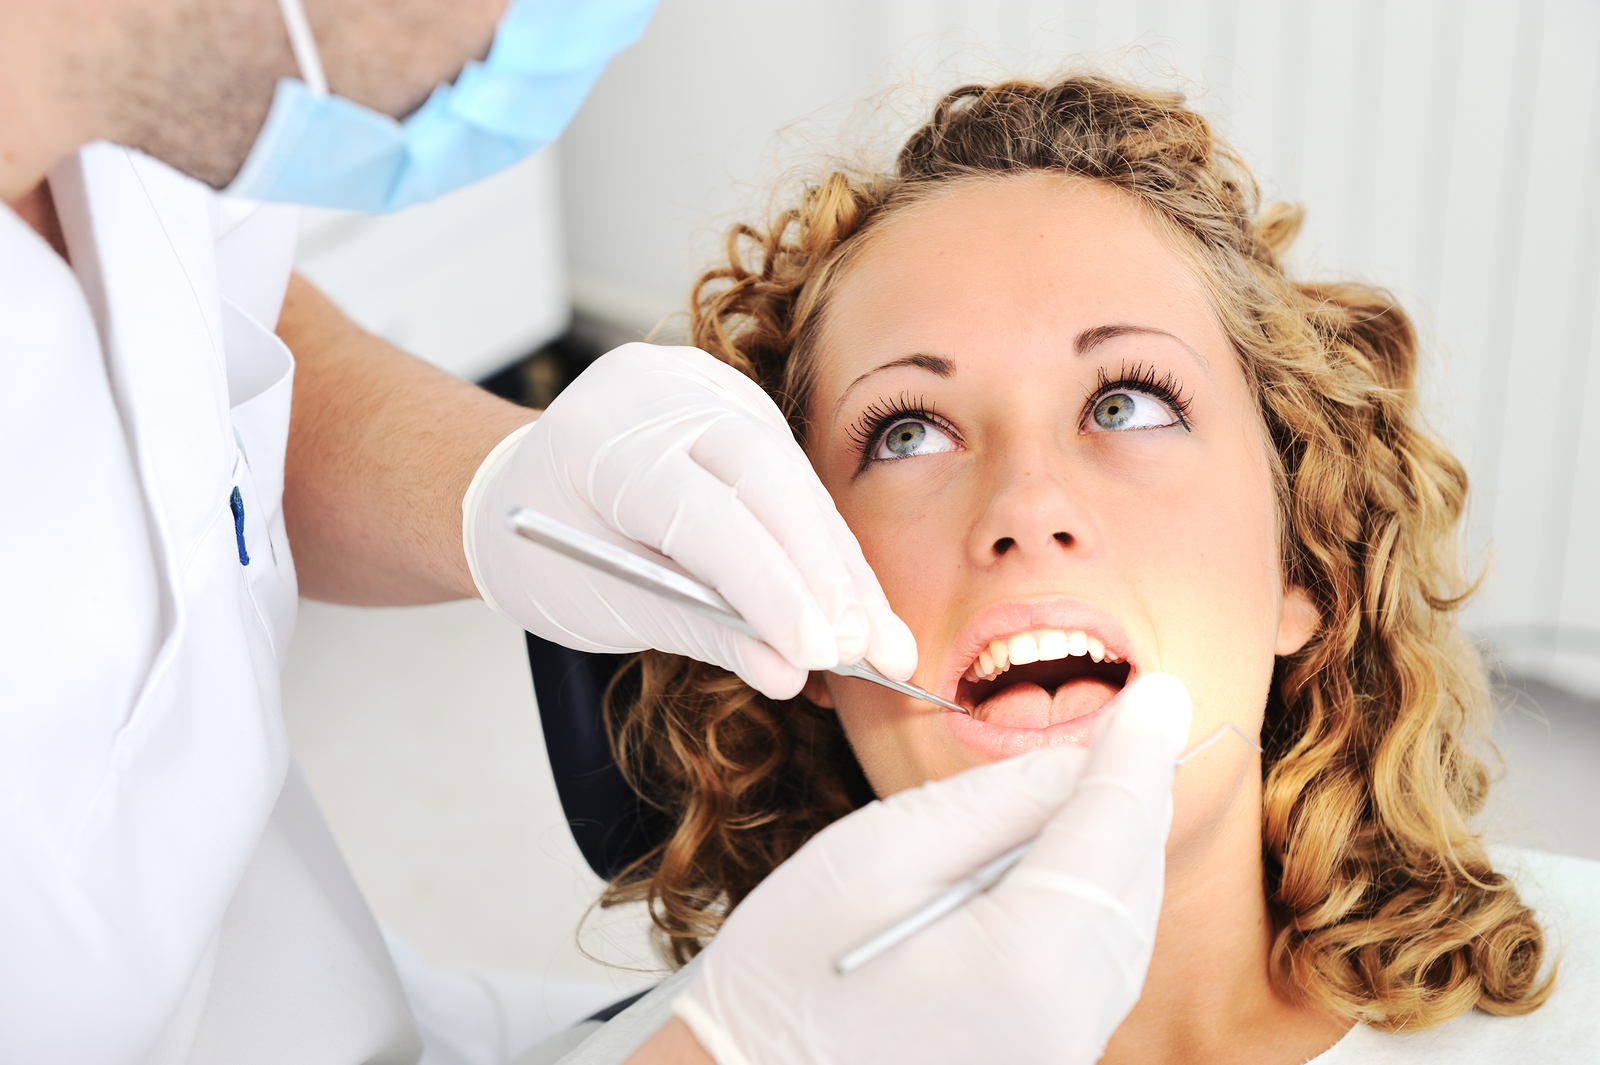 We are the experts for your dental needs.